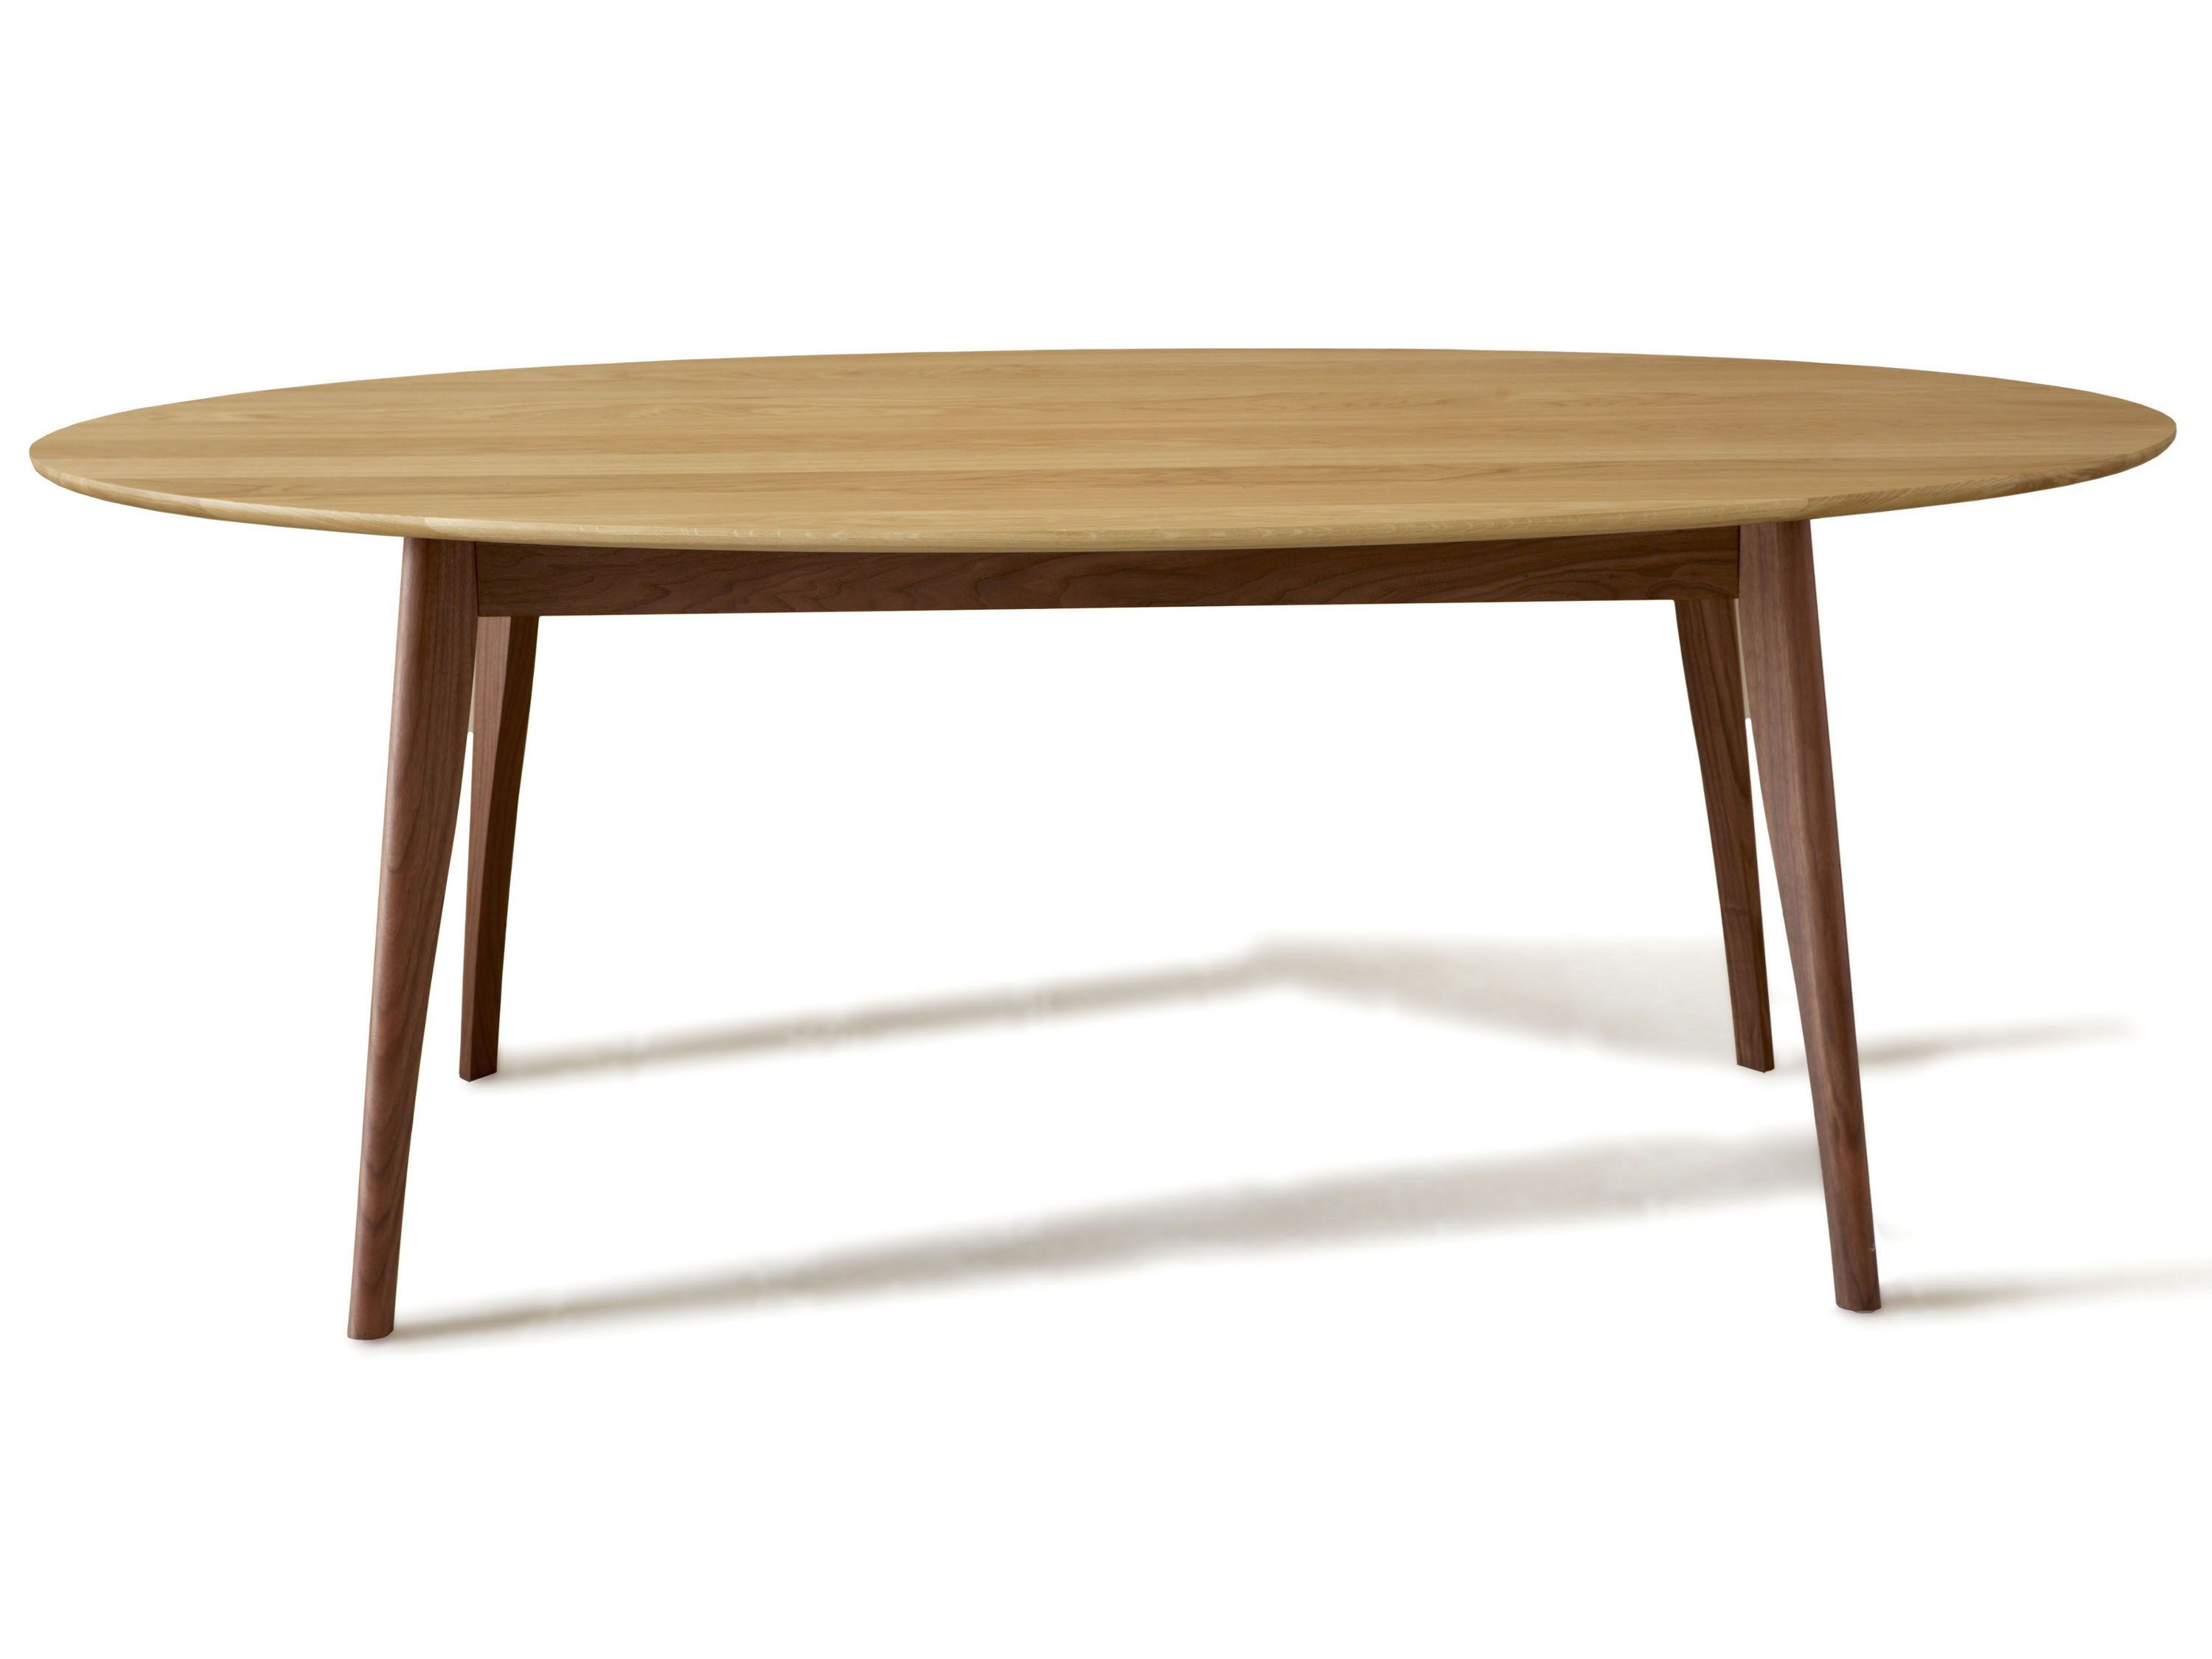 table ovale en noyer harper table ovale by pinch design russell pinch table pinterest. Black Bedroom Furniture Sets. Home Design Ideas